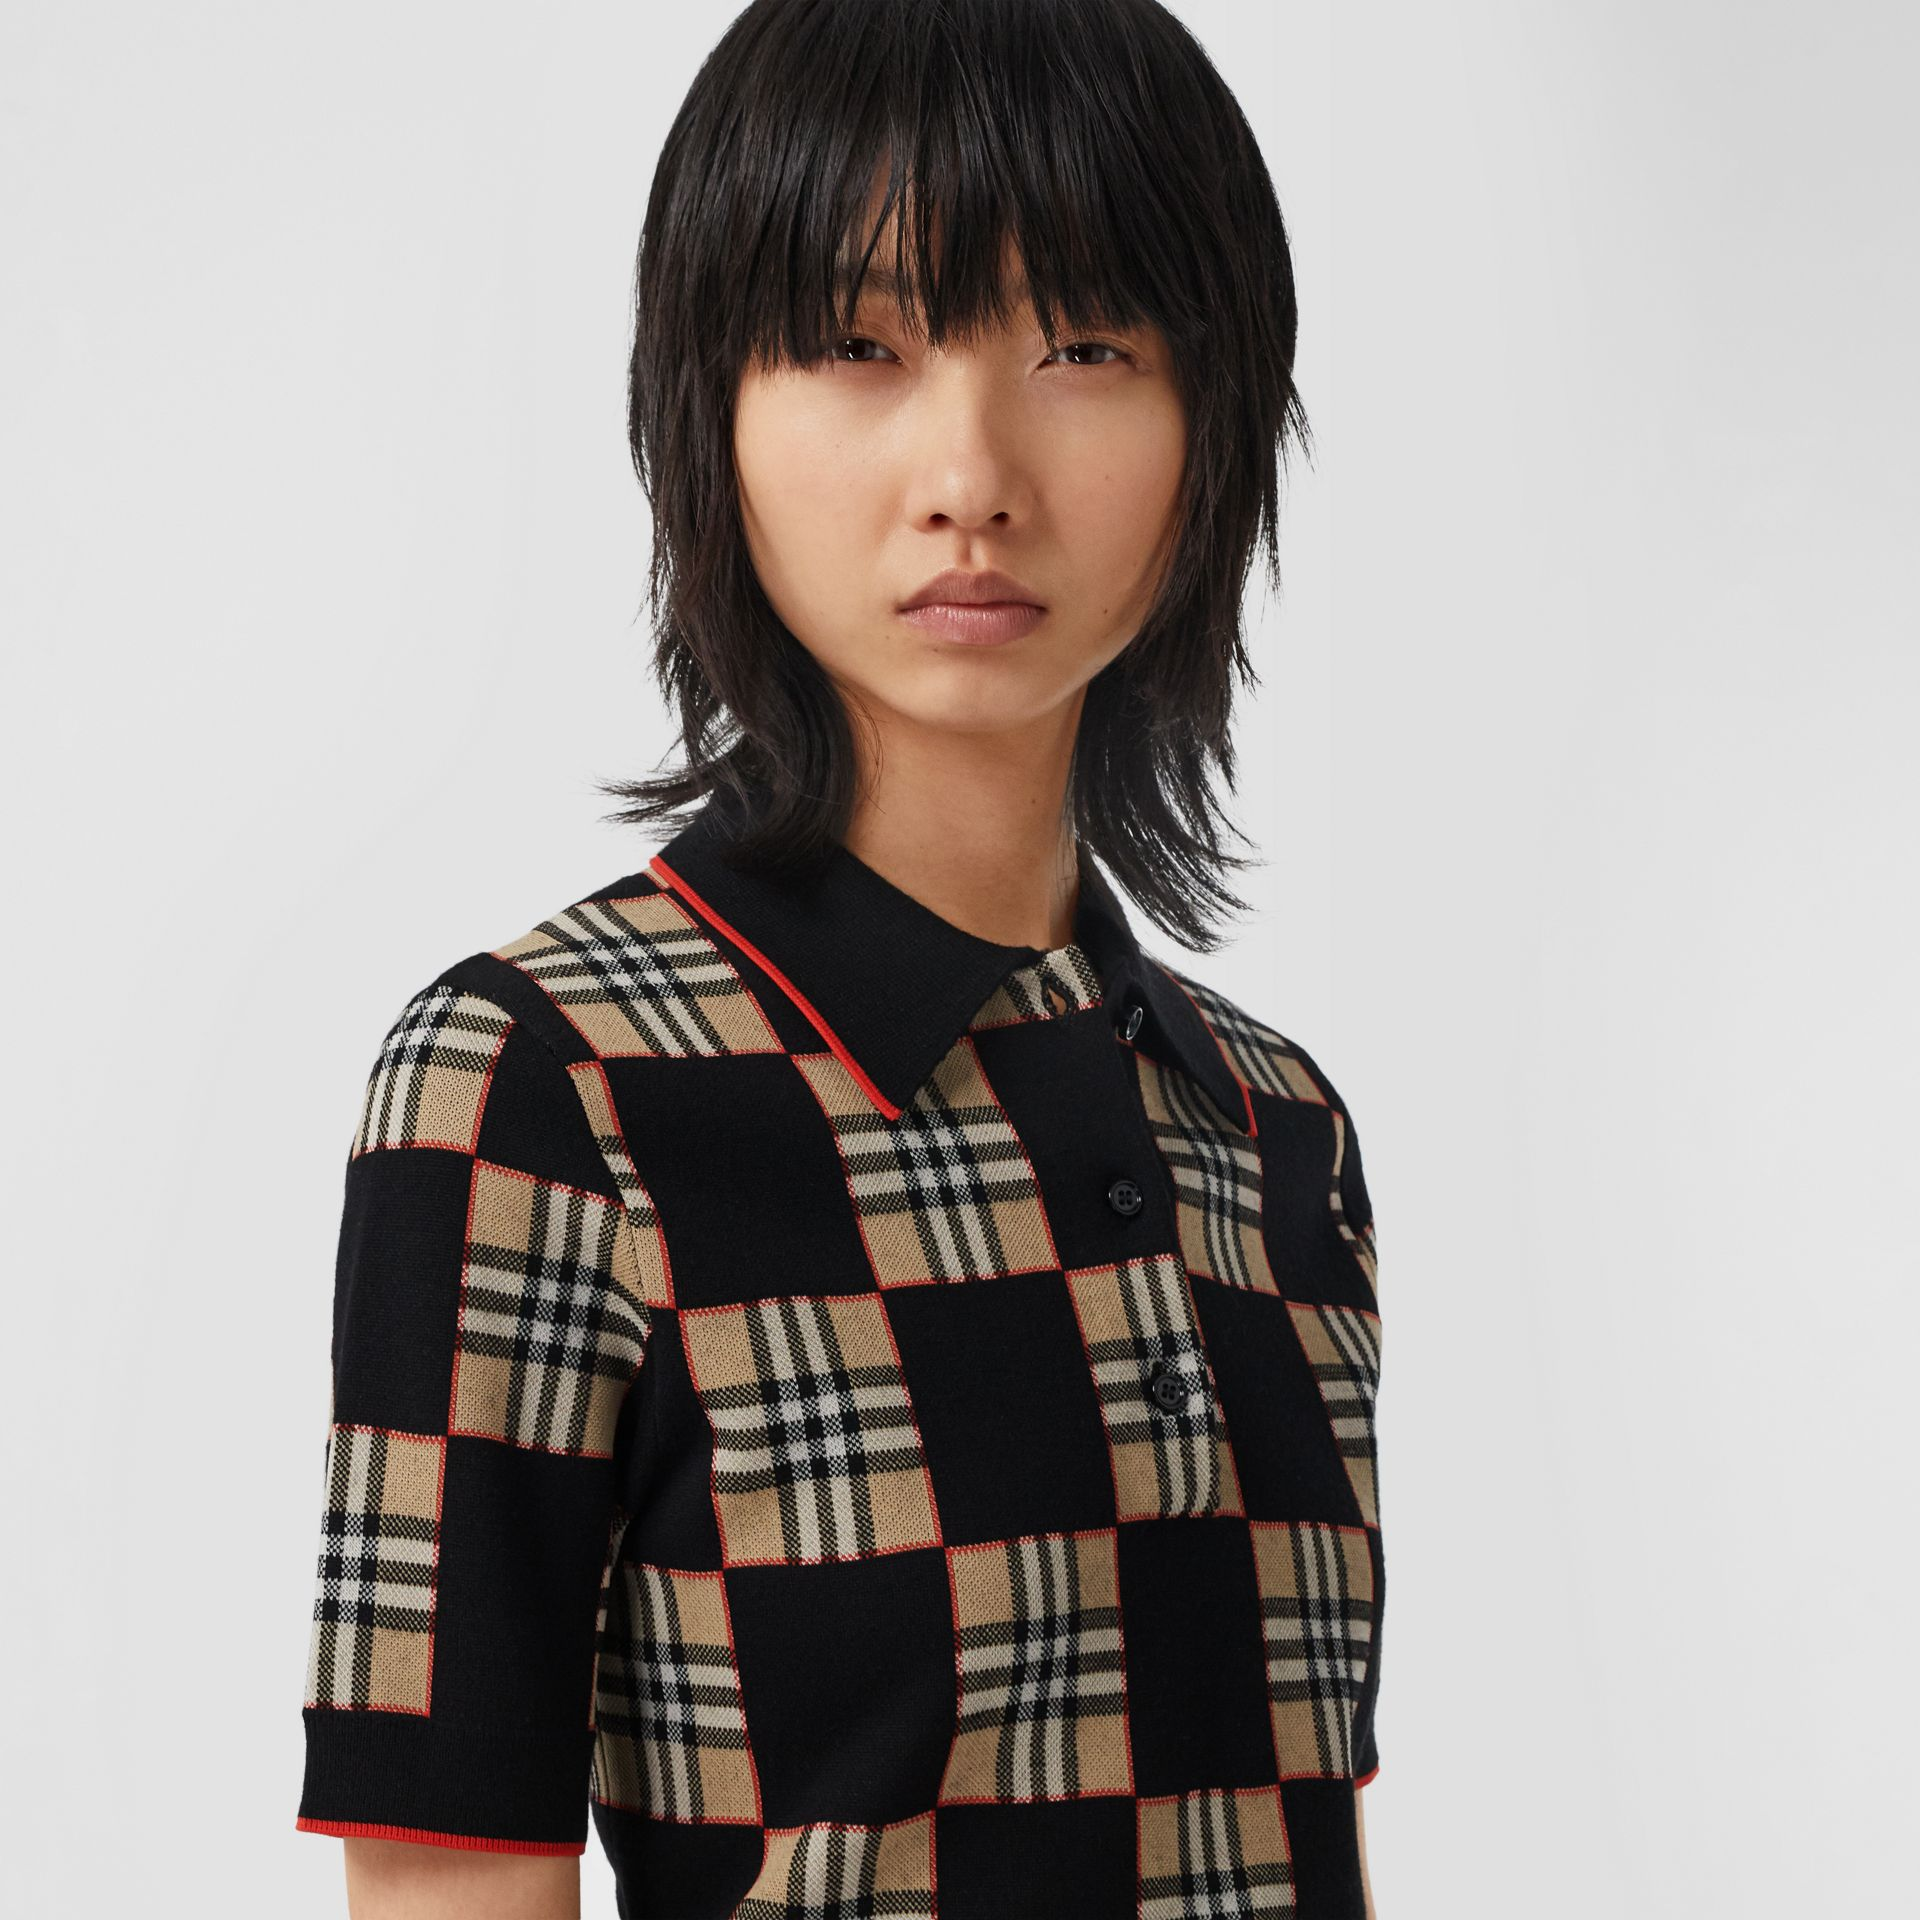 Chequer Merino Wool Blend Jacquard Polo Shirt in Black/archive Beige - Women | Burberry Hong Kong S.A.R - gallery image 1